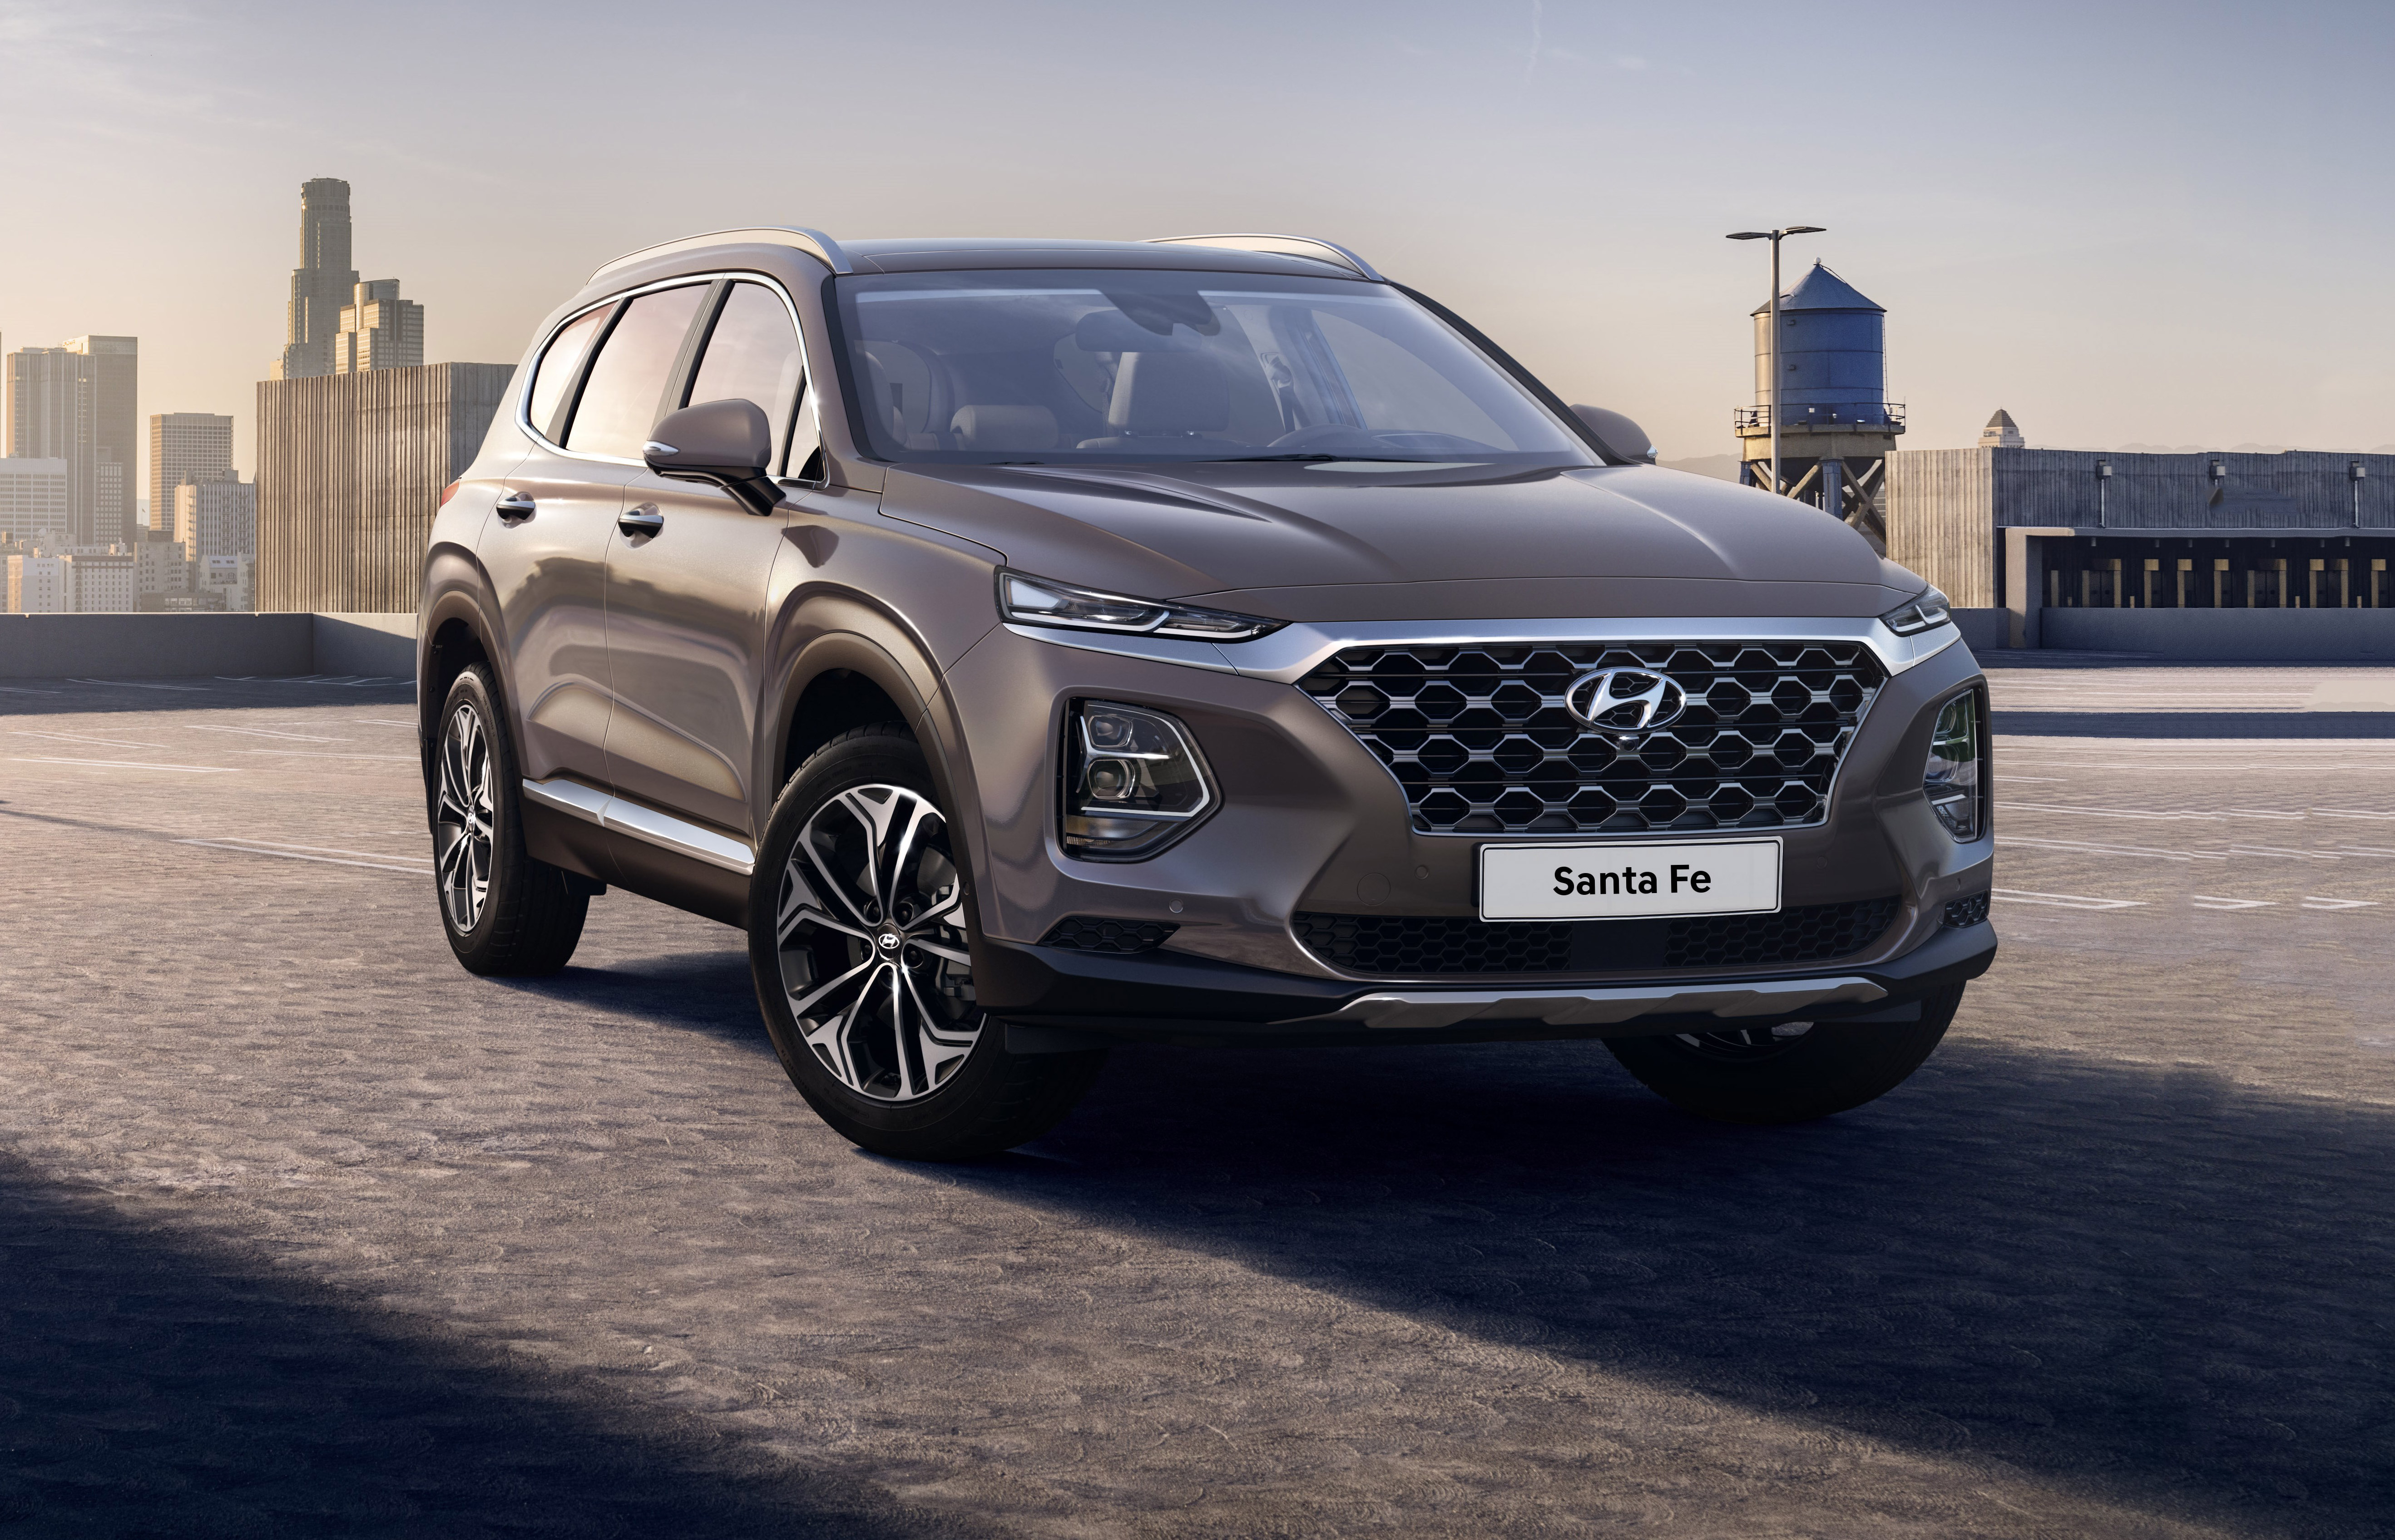 2018 hyundai santa fe 7 seater price specs release date carwow. Black Bedroom Furniture Sets. Home Design Ideas